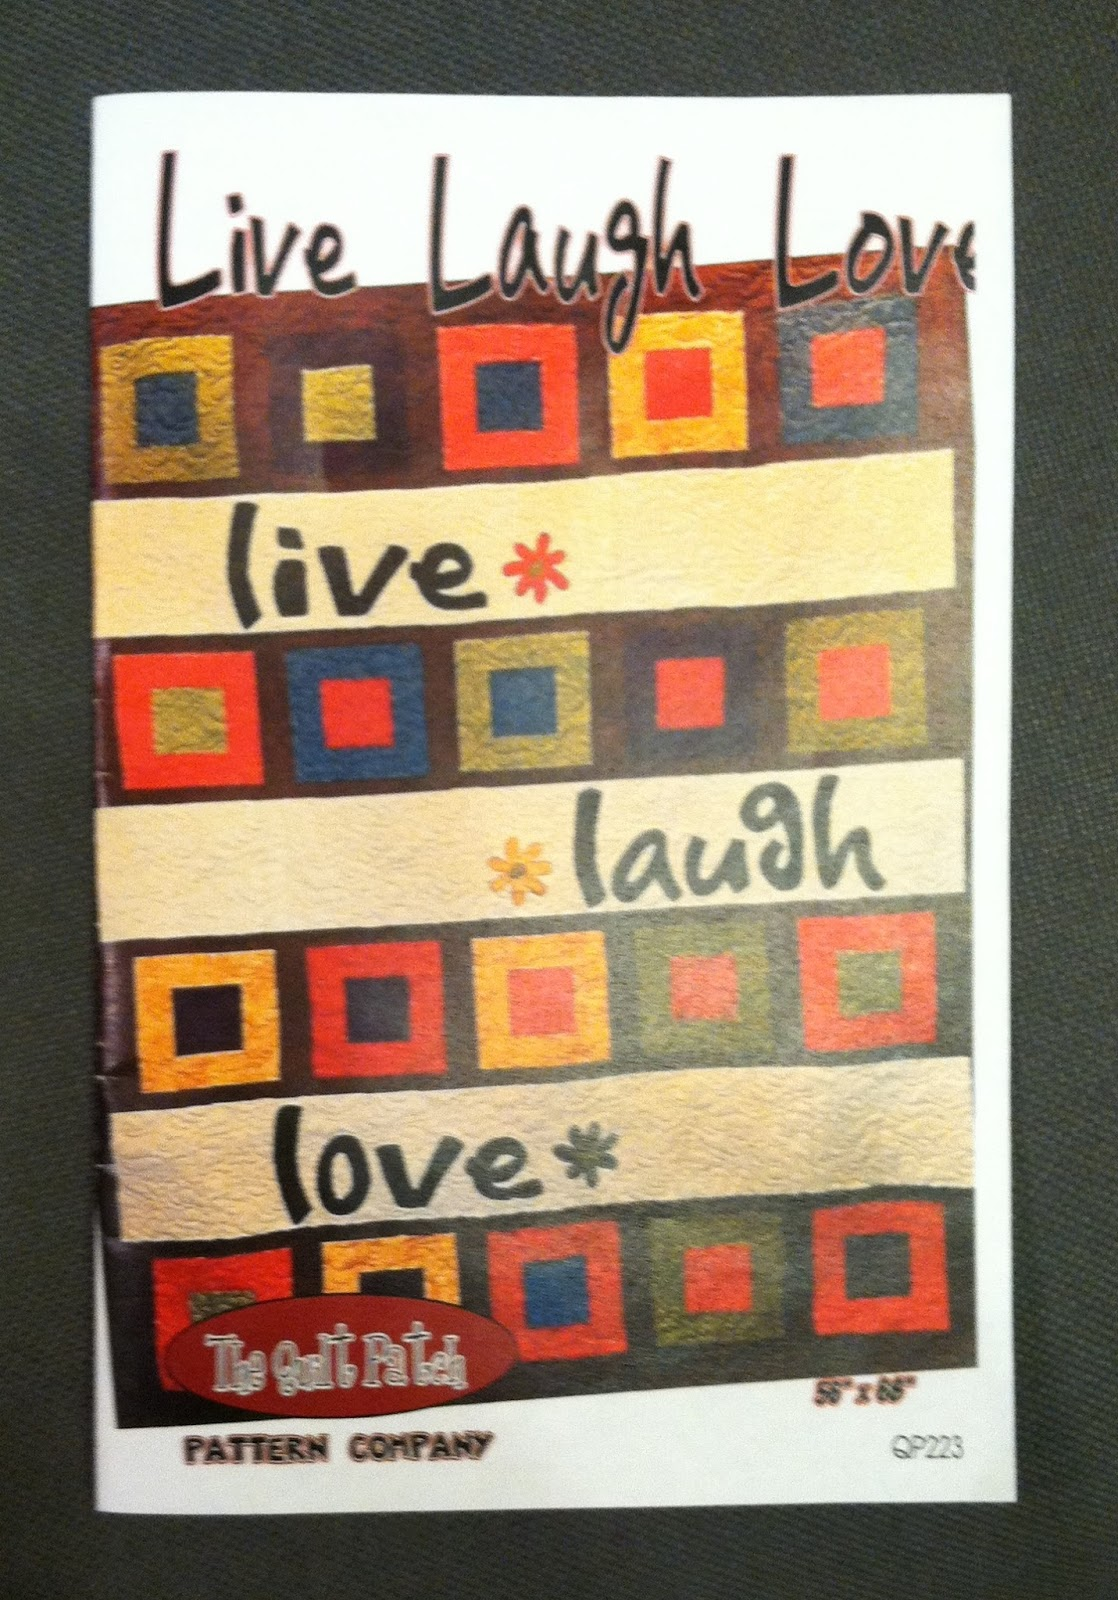 Everyone Deserves a Quilt: Design Wall Monday : love laugh quilt - Adamdwight.com